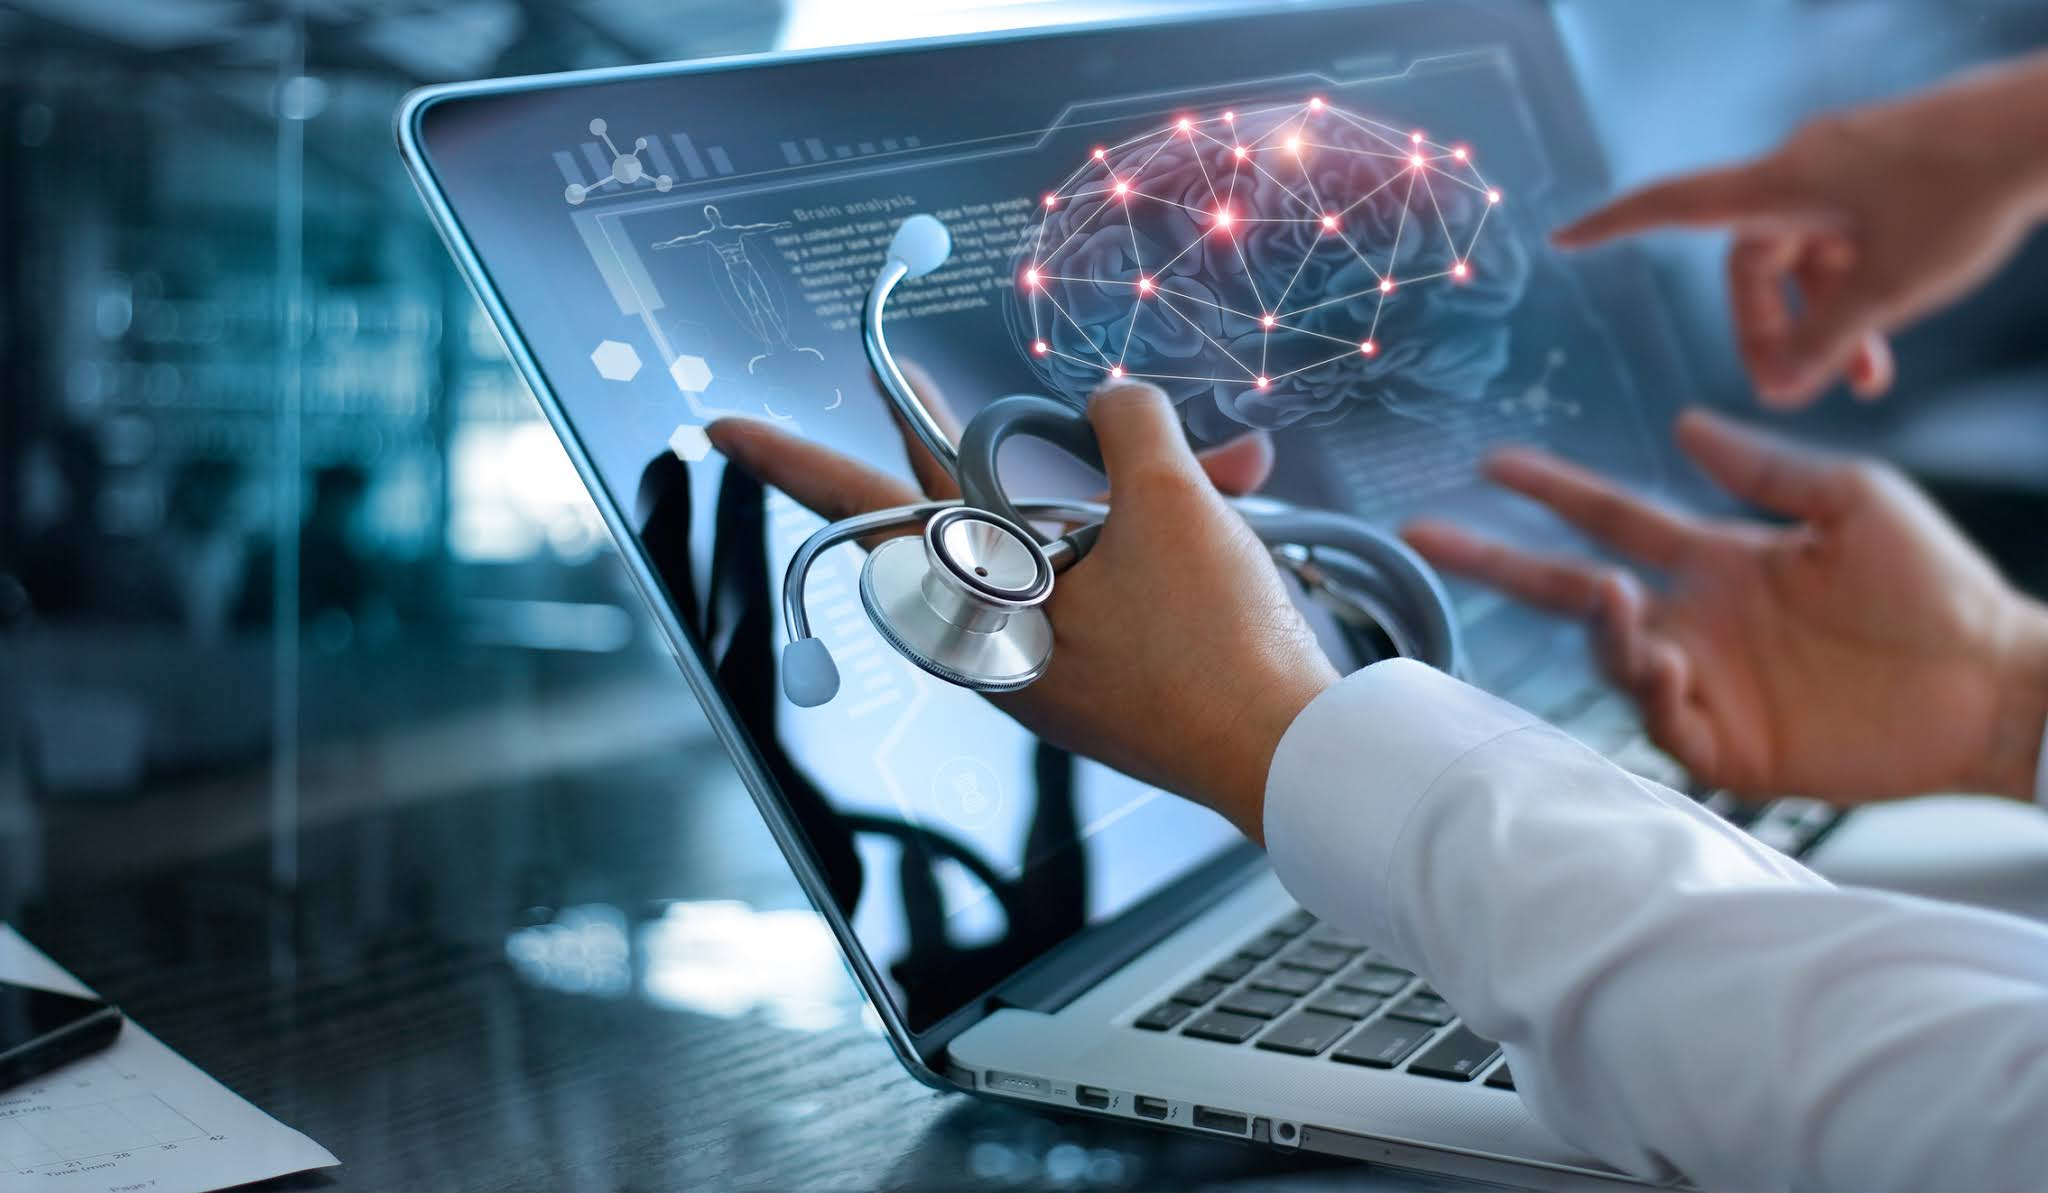 The complete analysis of the neuromodulation devices market